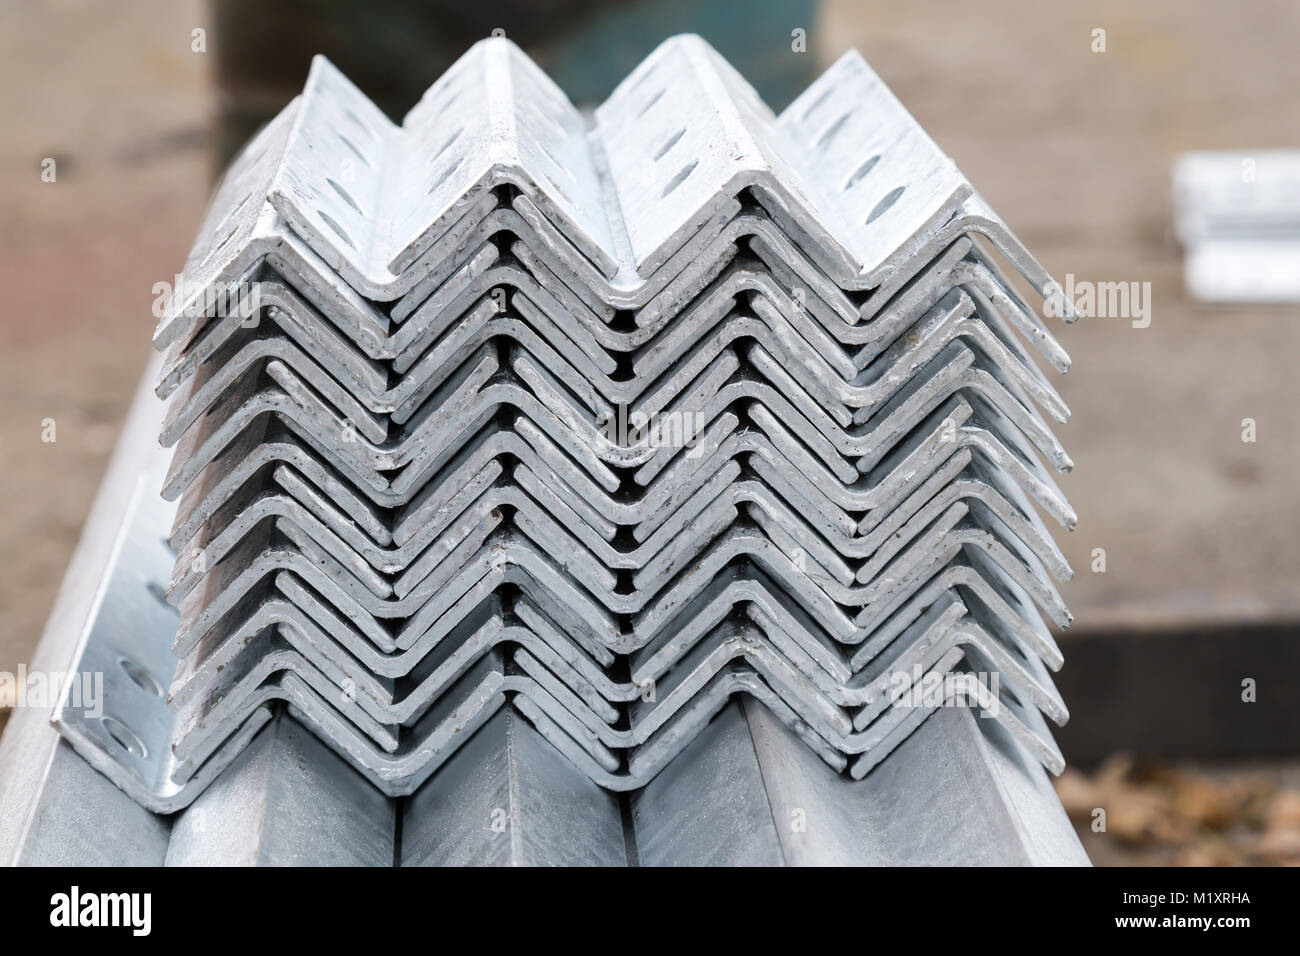 Galvanized steel material in row - Stock Image